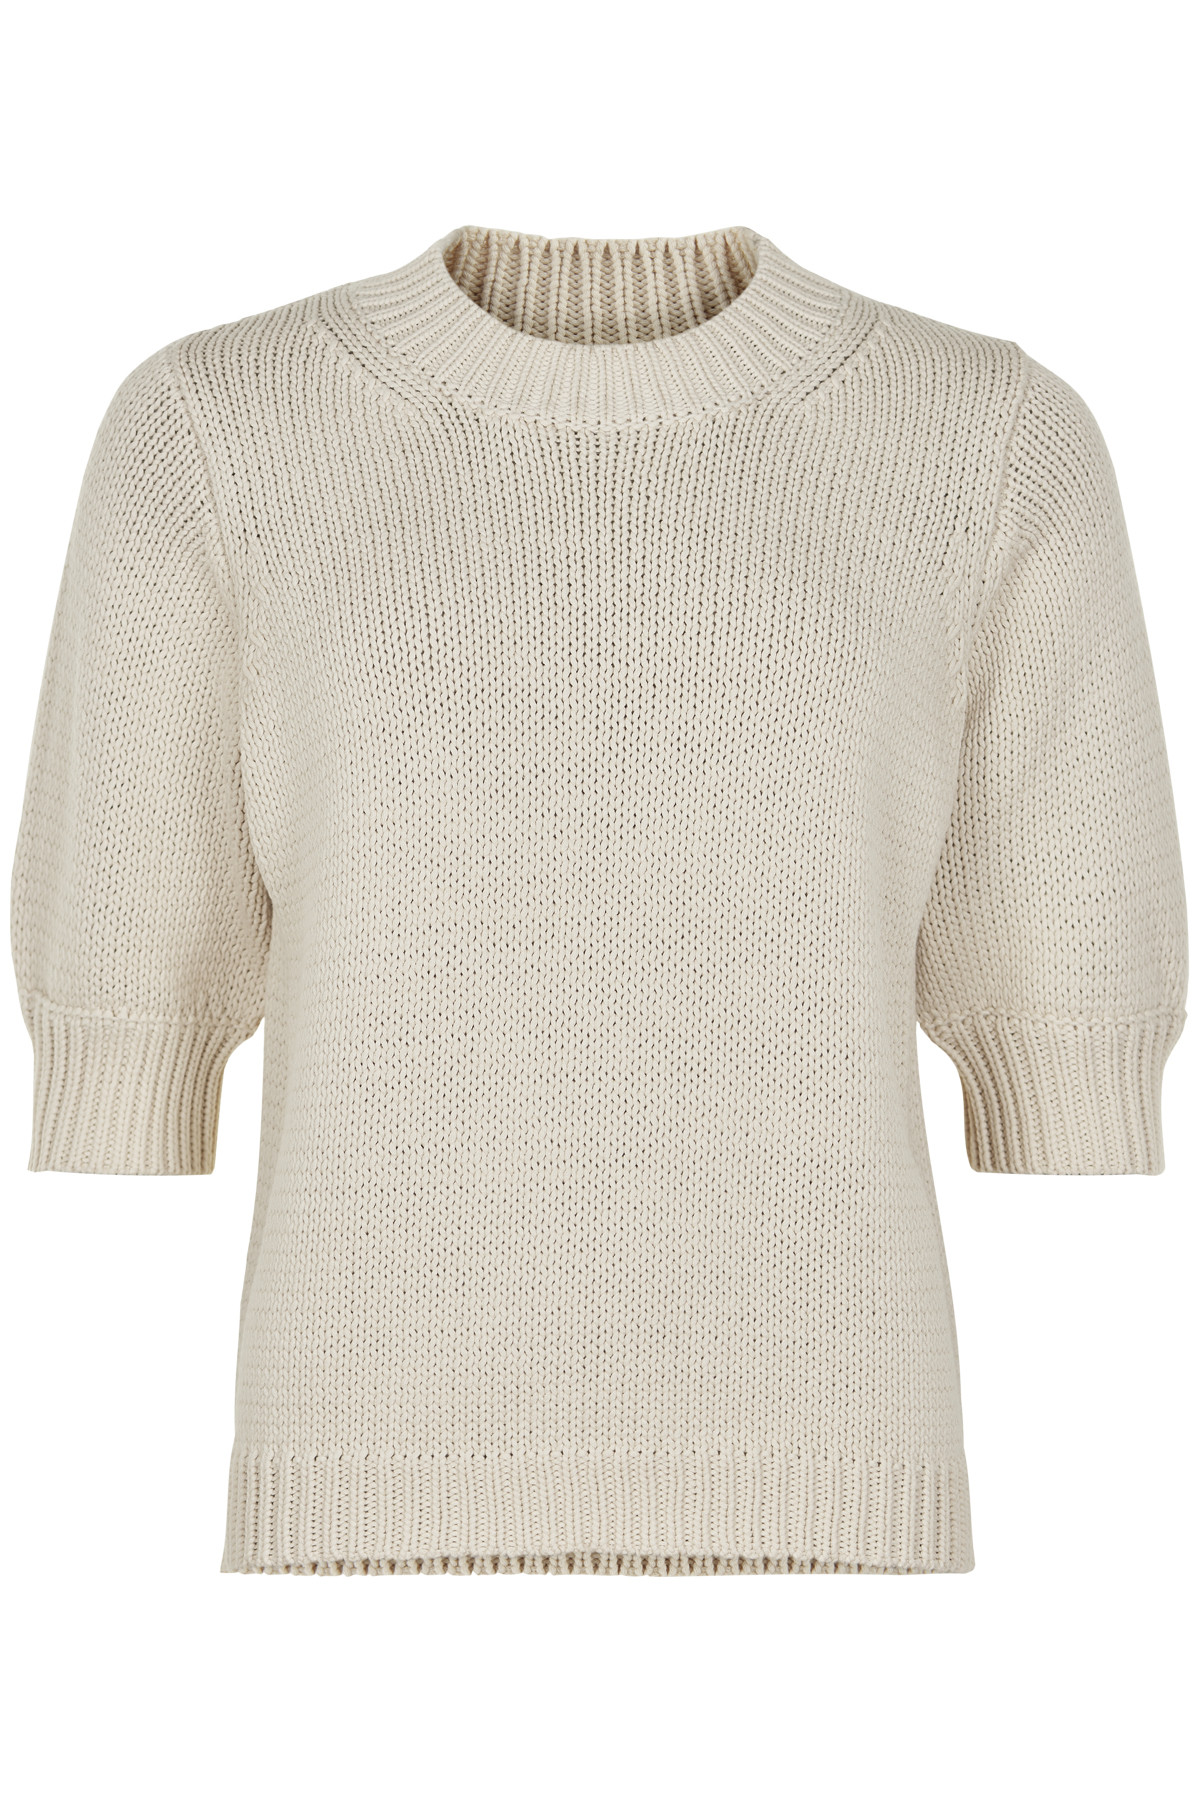 Image of   AND LESS ALBENA PULLOVER 5220205 9504 (Birch, S)